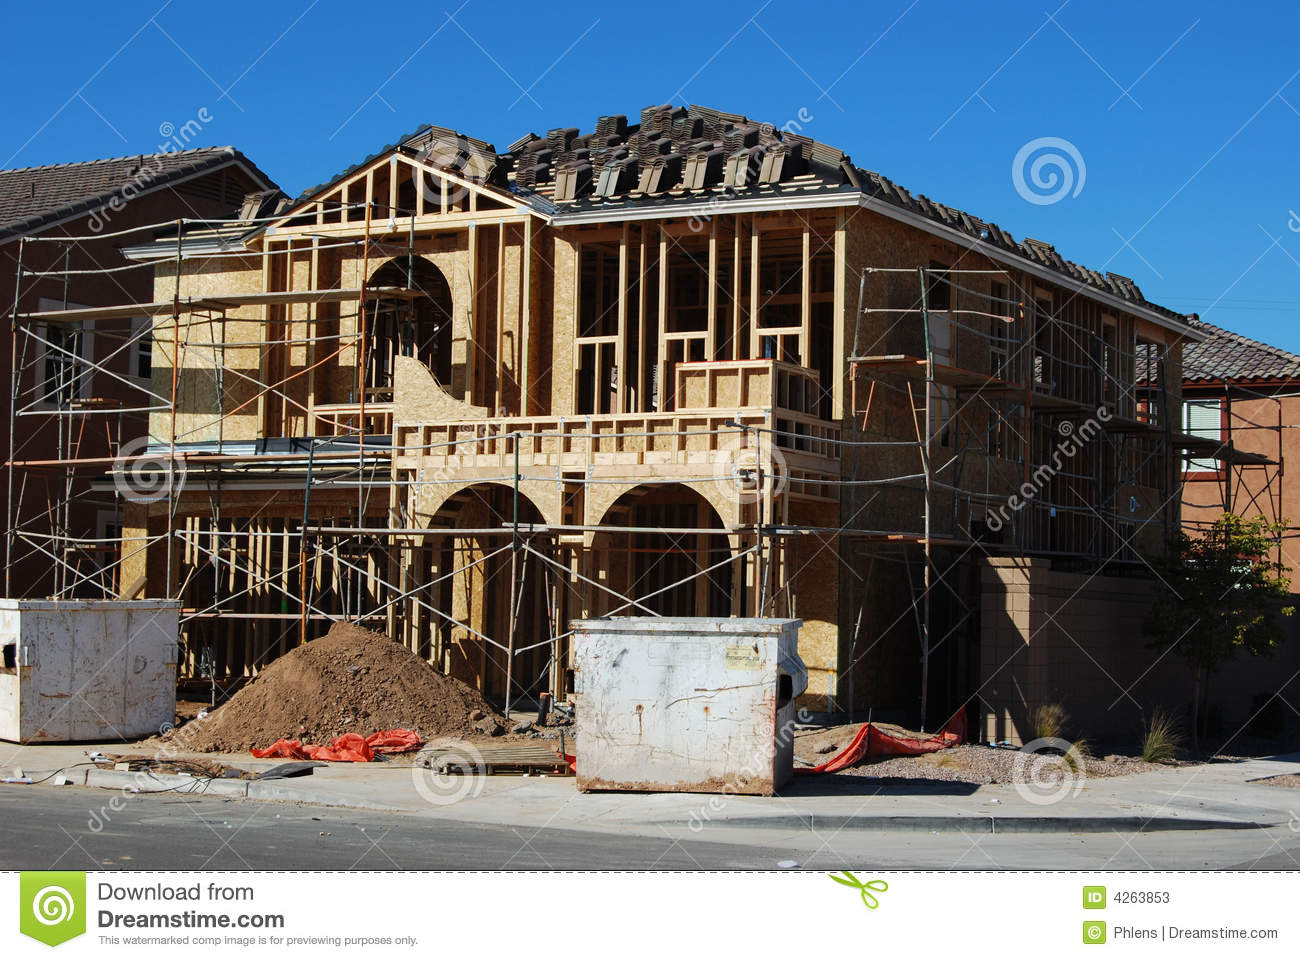 Building a 2 story new home stock photos image 4263853 for Building a 2 story house